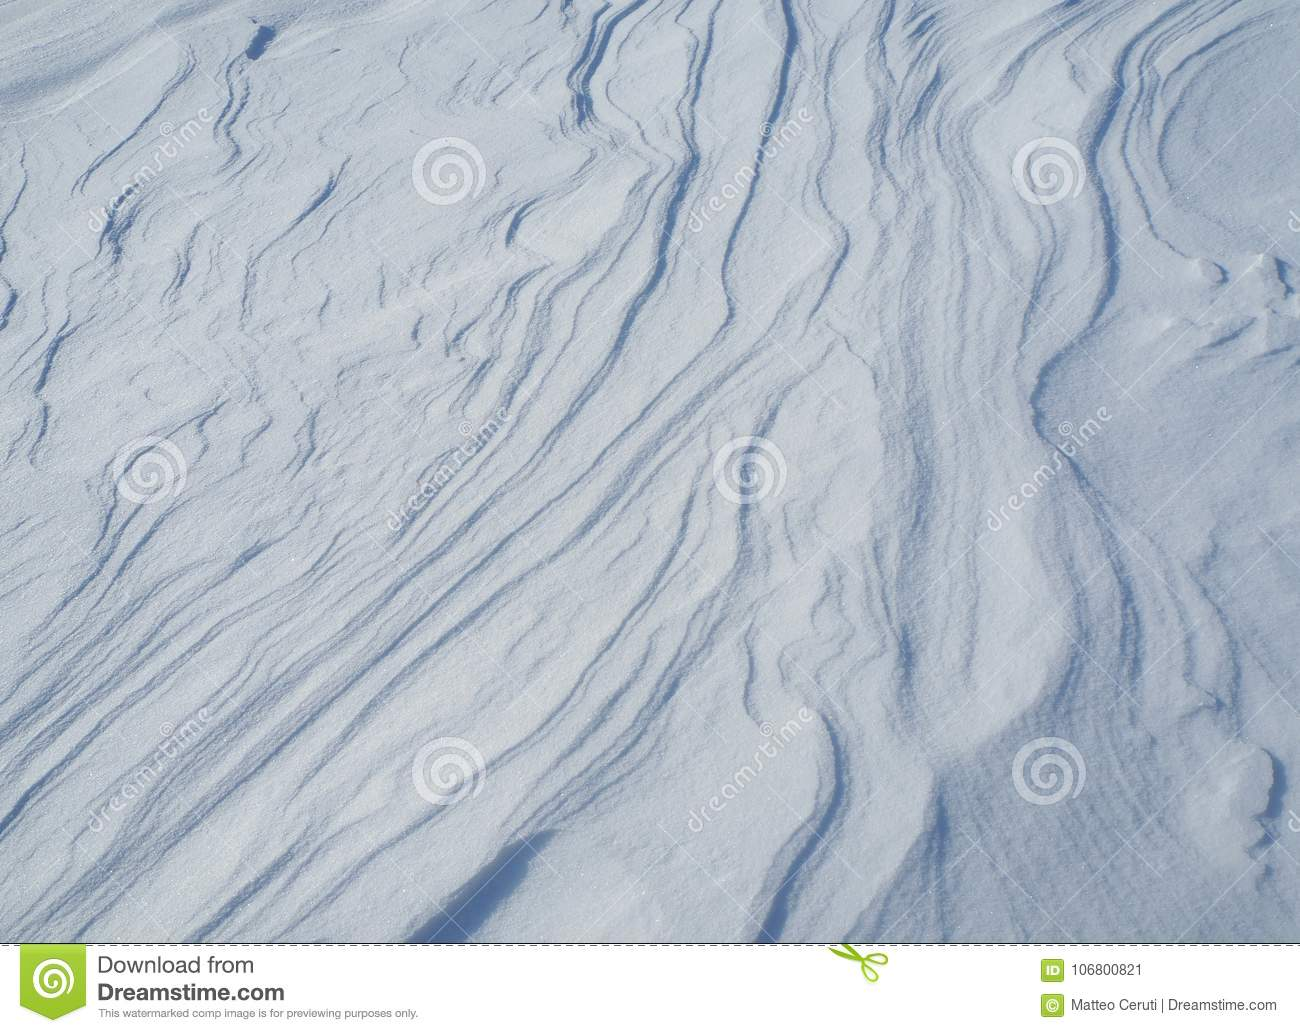 Waves and lines created by the wind on fresh snow